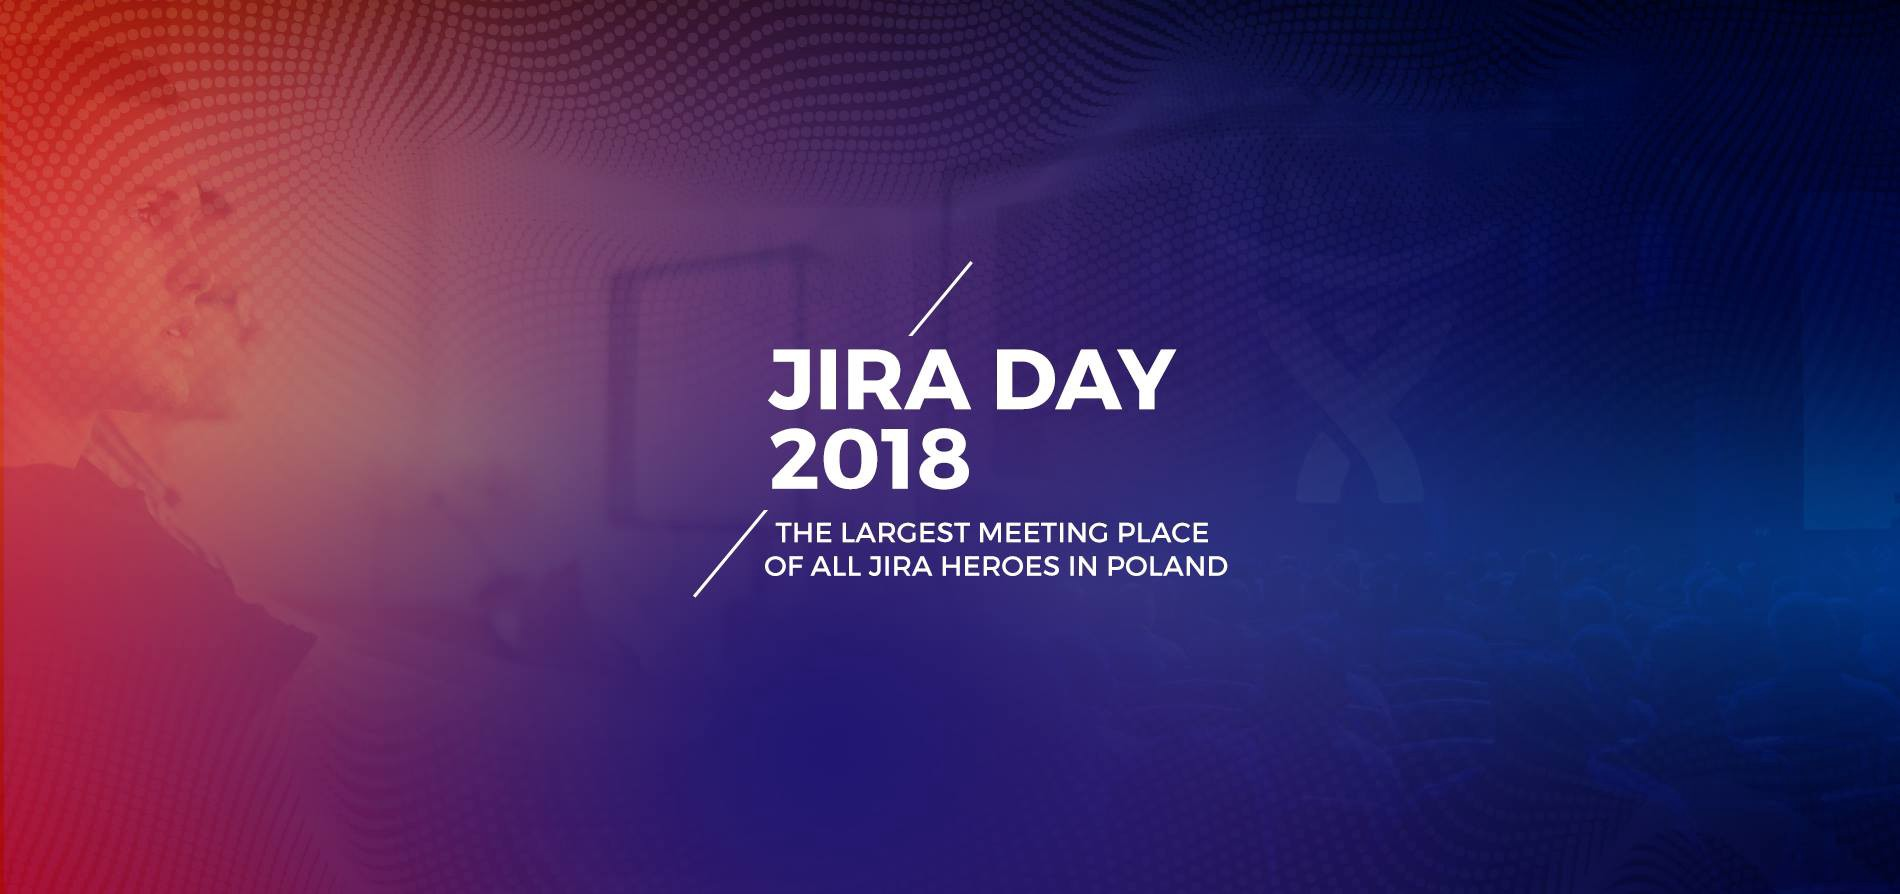 Jira Day 2018: What Was It All About? - Krzysztof Skoropada